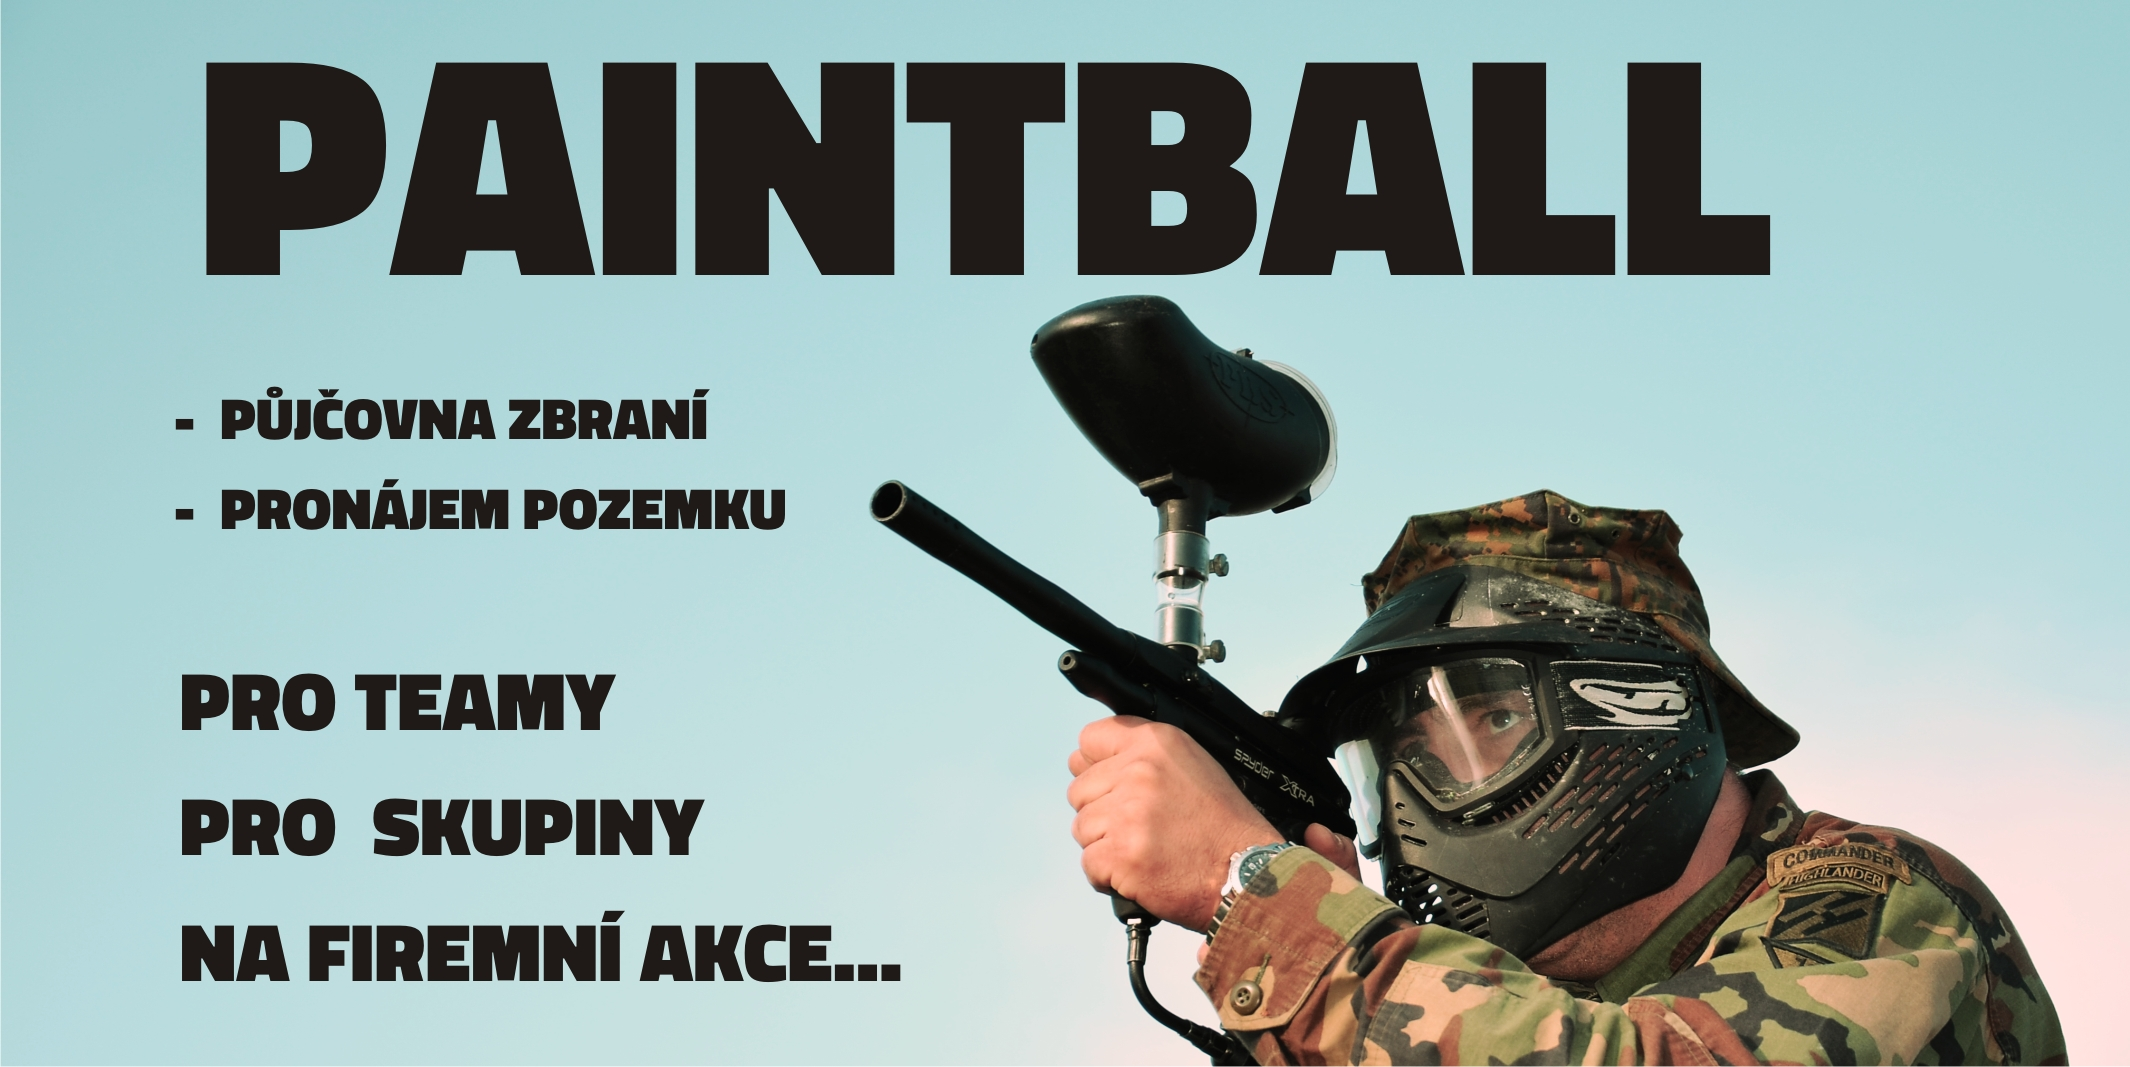 slide /fotky61448/slider/banery---paintball.jpg